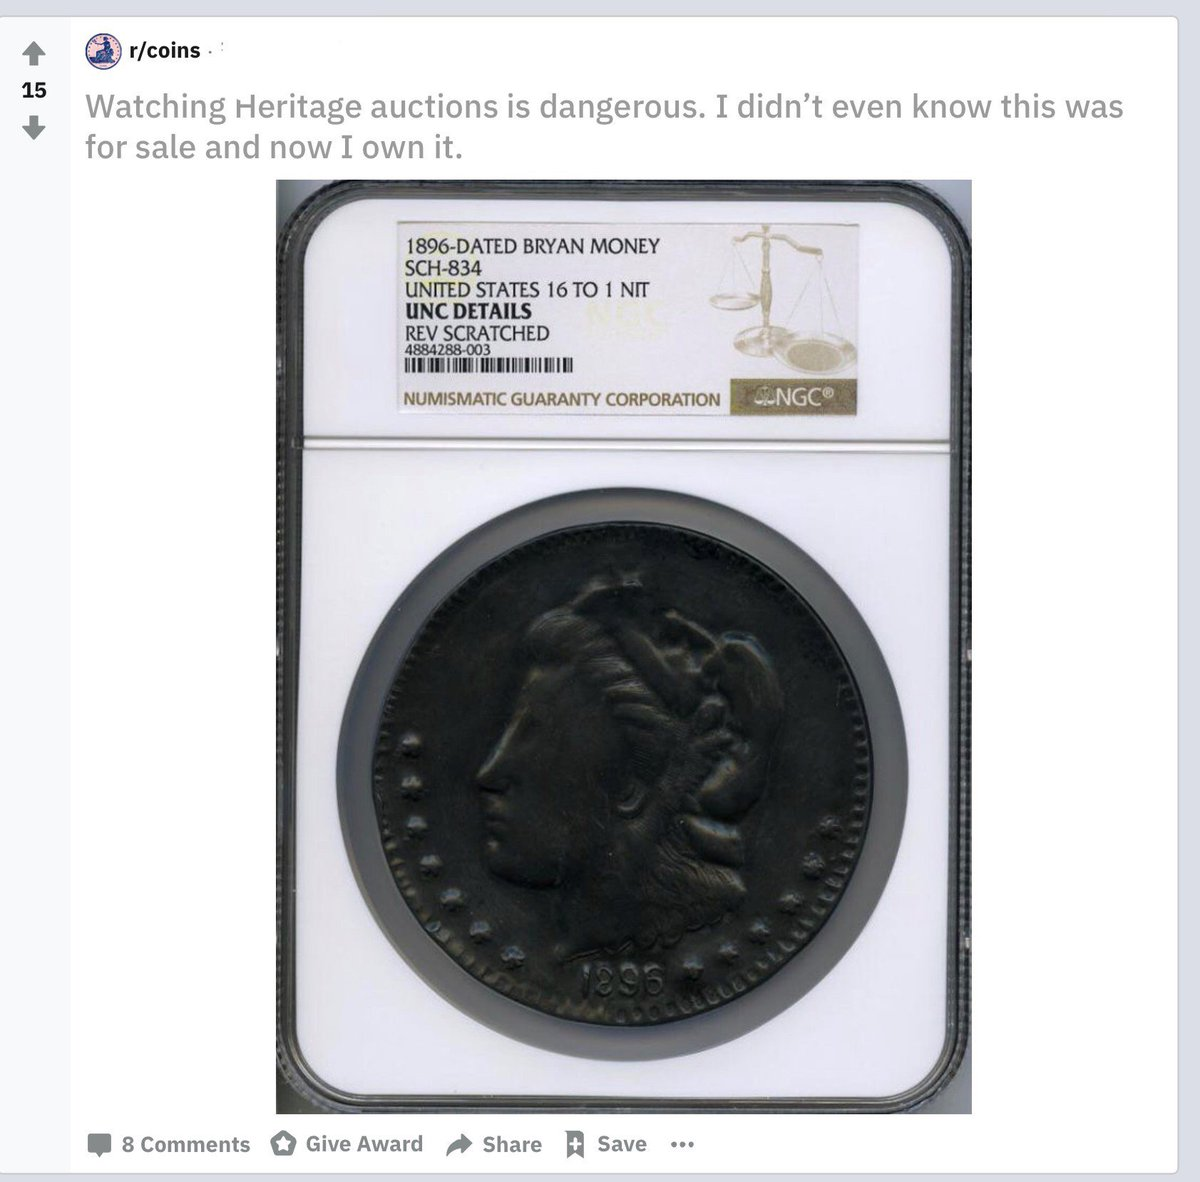 Heritage Auctions on Twitter: